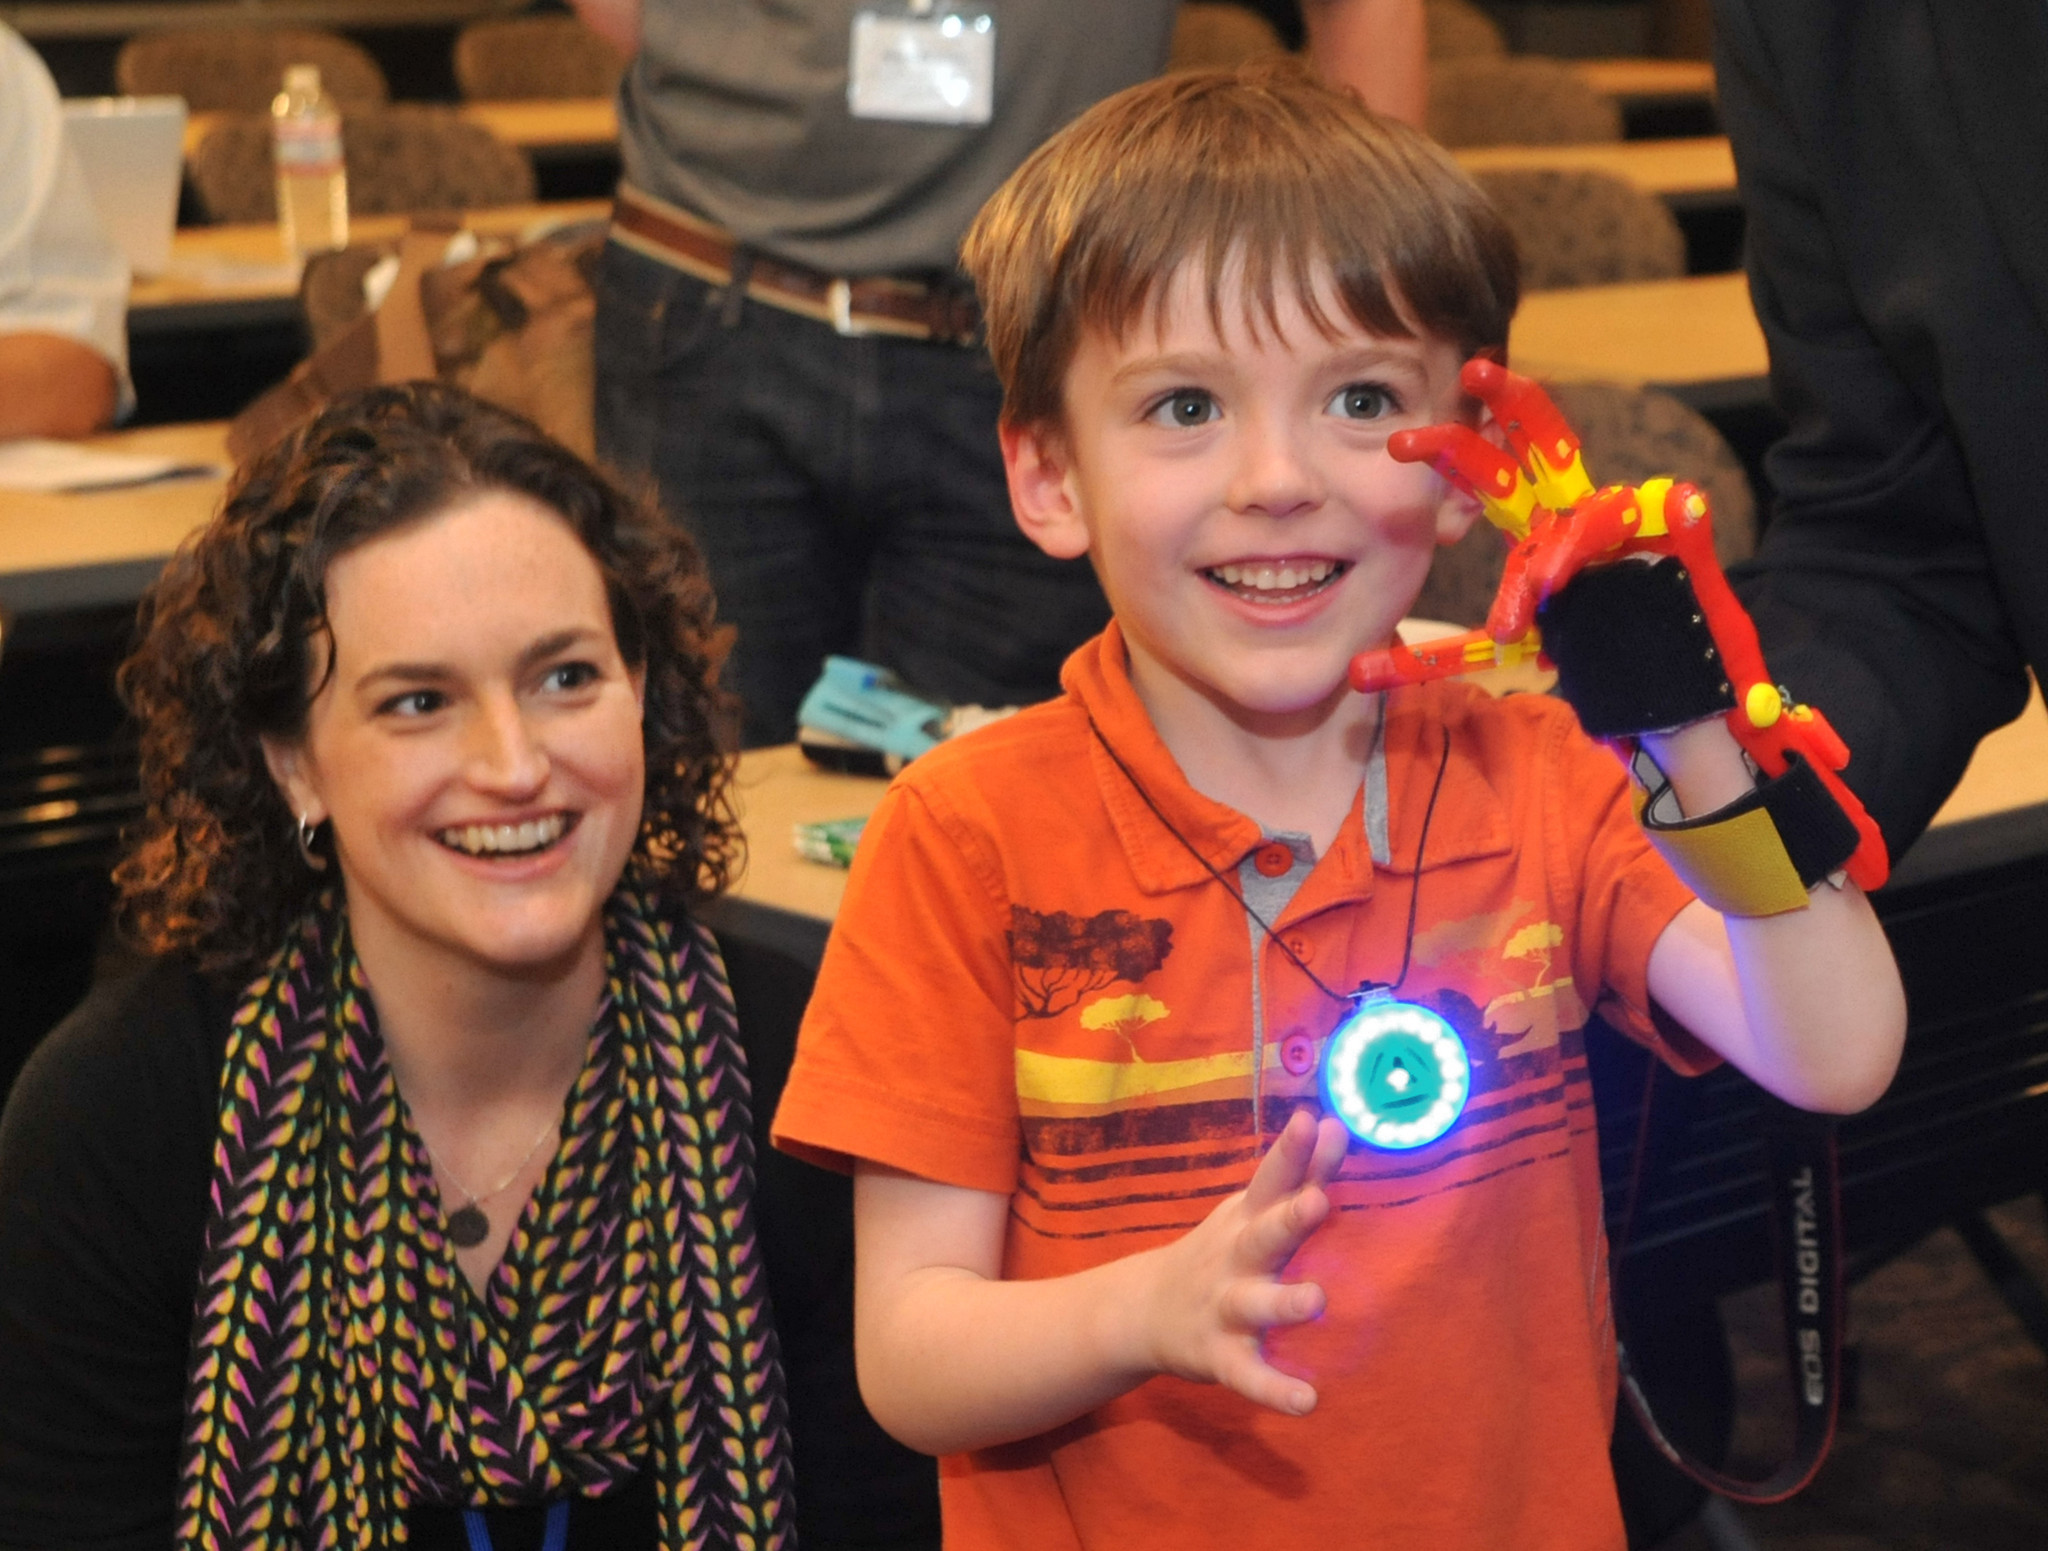 Kids Outfitted With New Hands Made On 3 D Printers